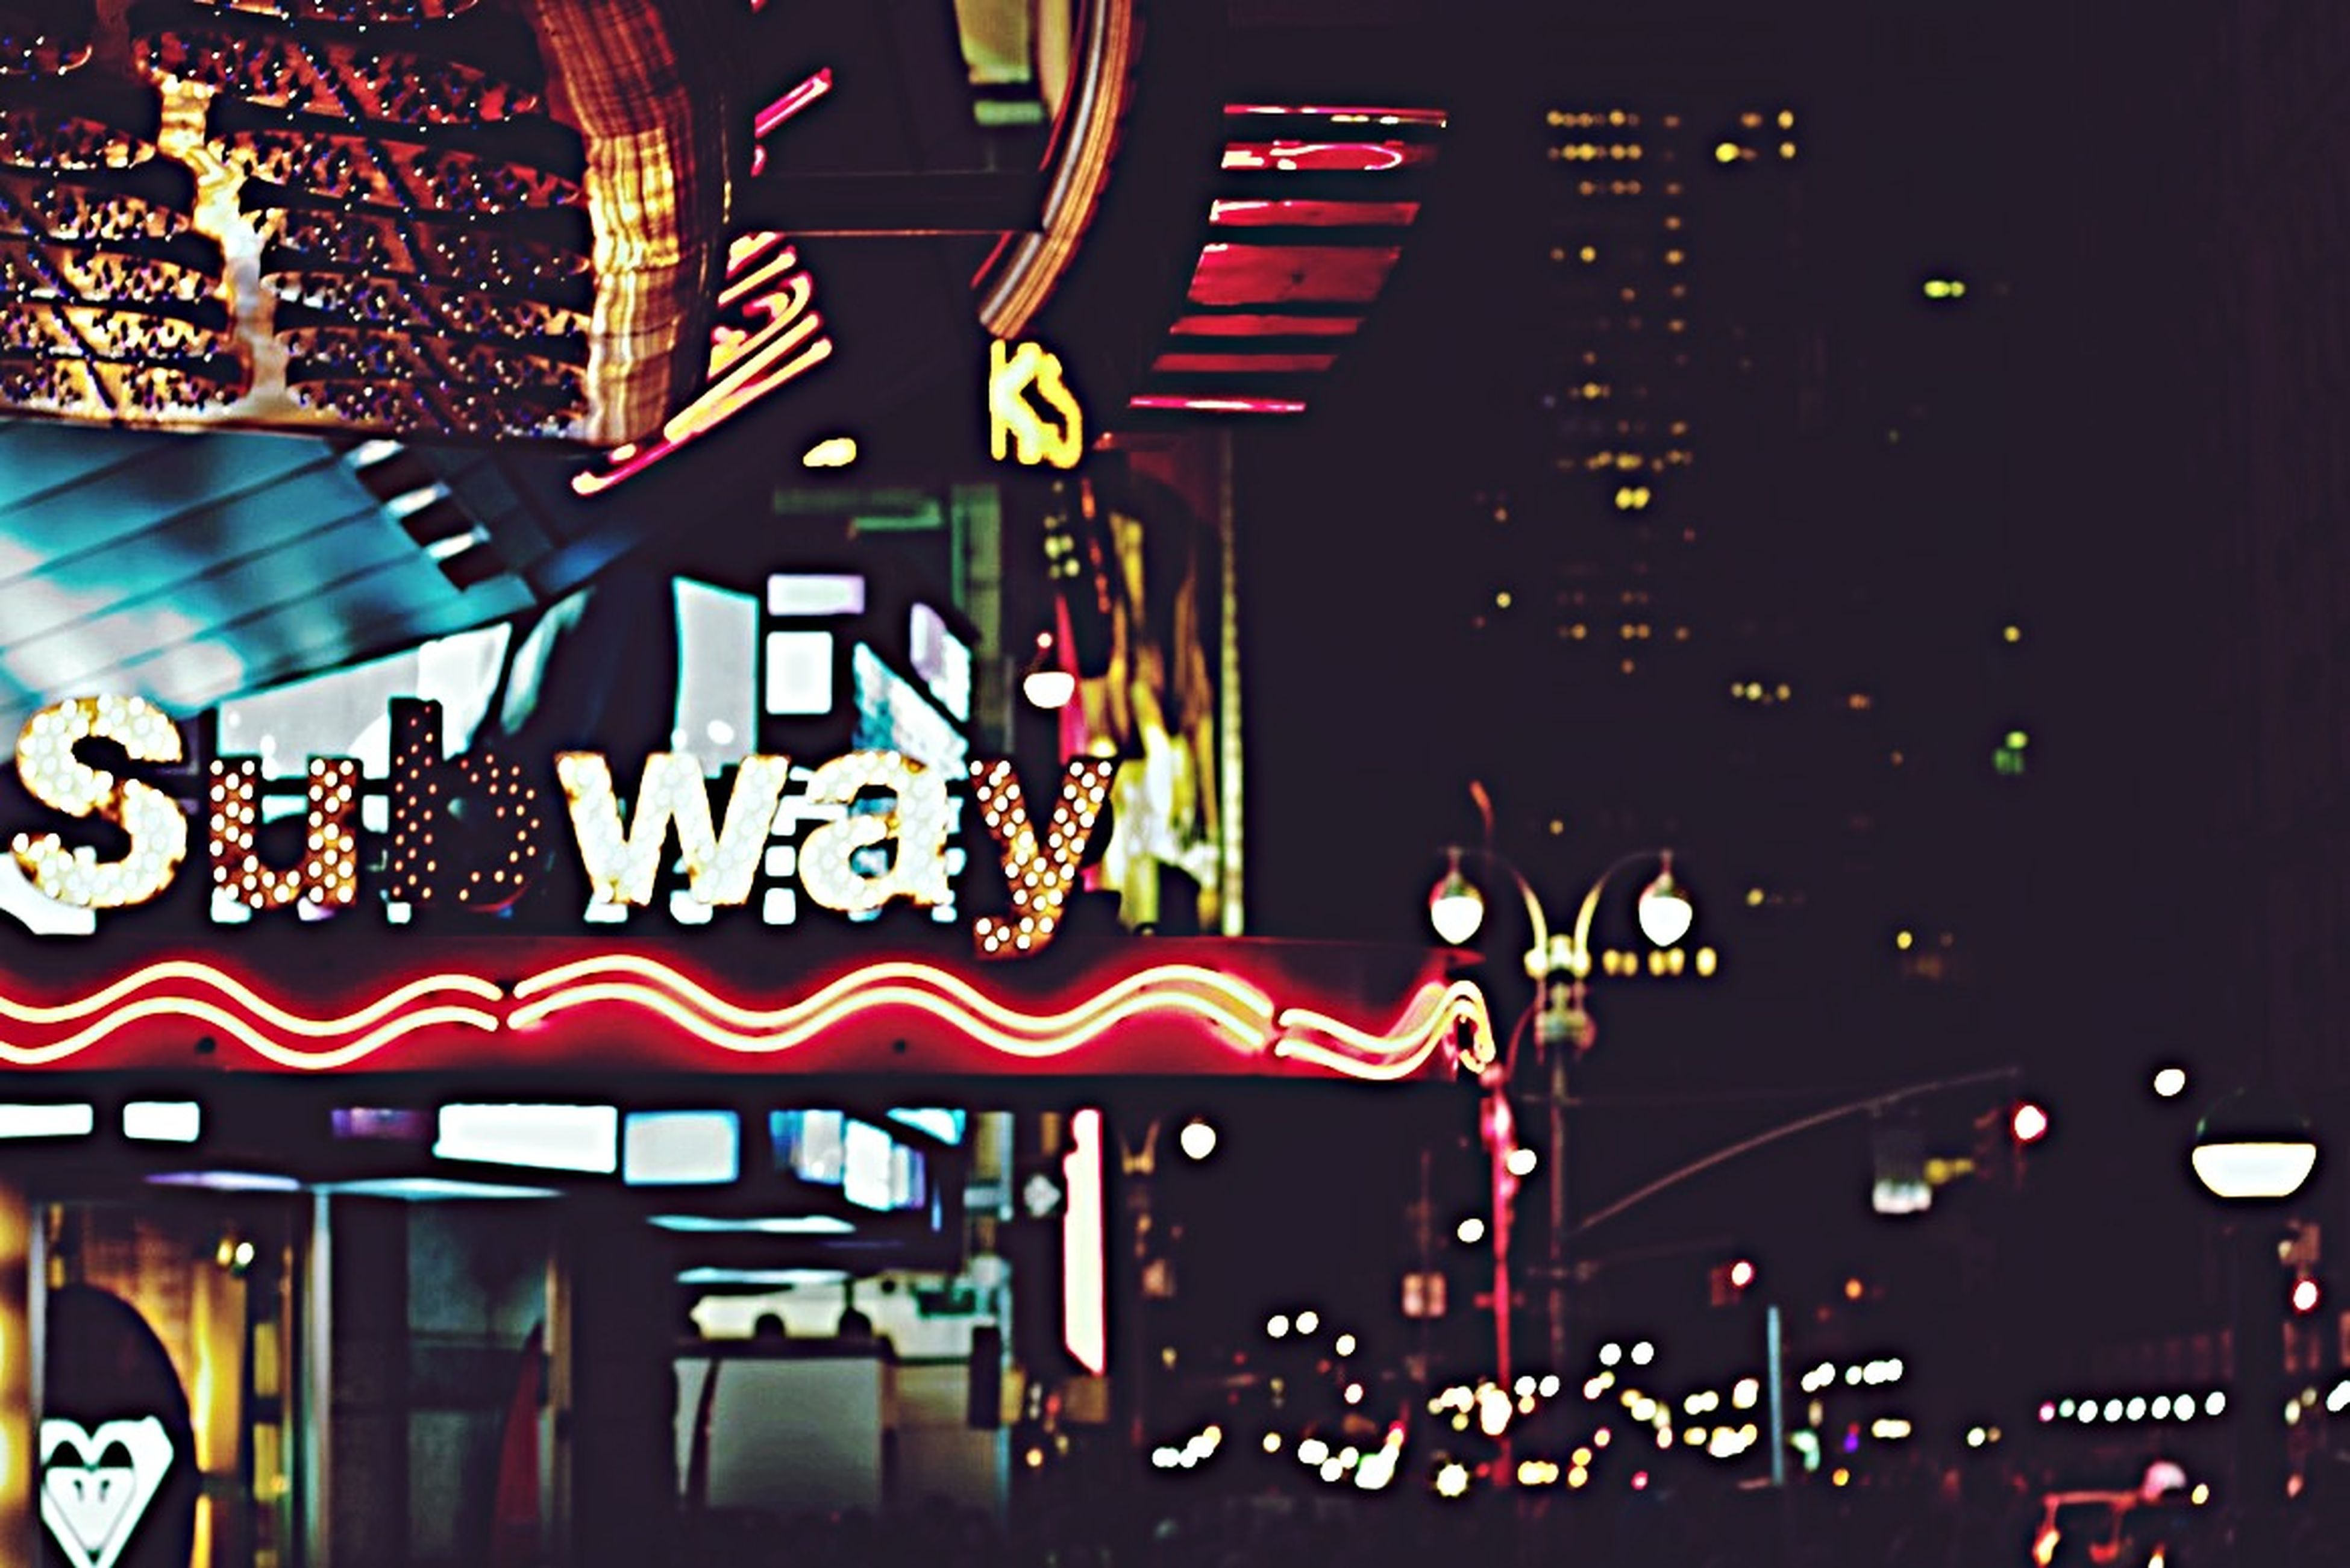 illuminated, night, built structure, architecture, building exterior, text, lighting equipment, indoors, multi colored, city, no people, communication, western script, graffiti, building, arts culture and entertainment, low angle view, non-western script, red